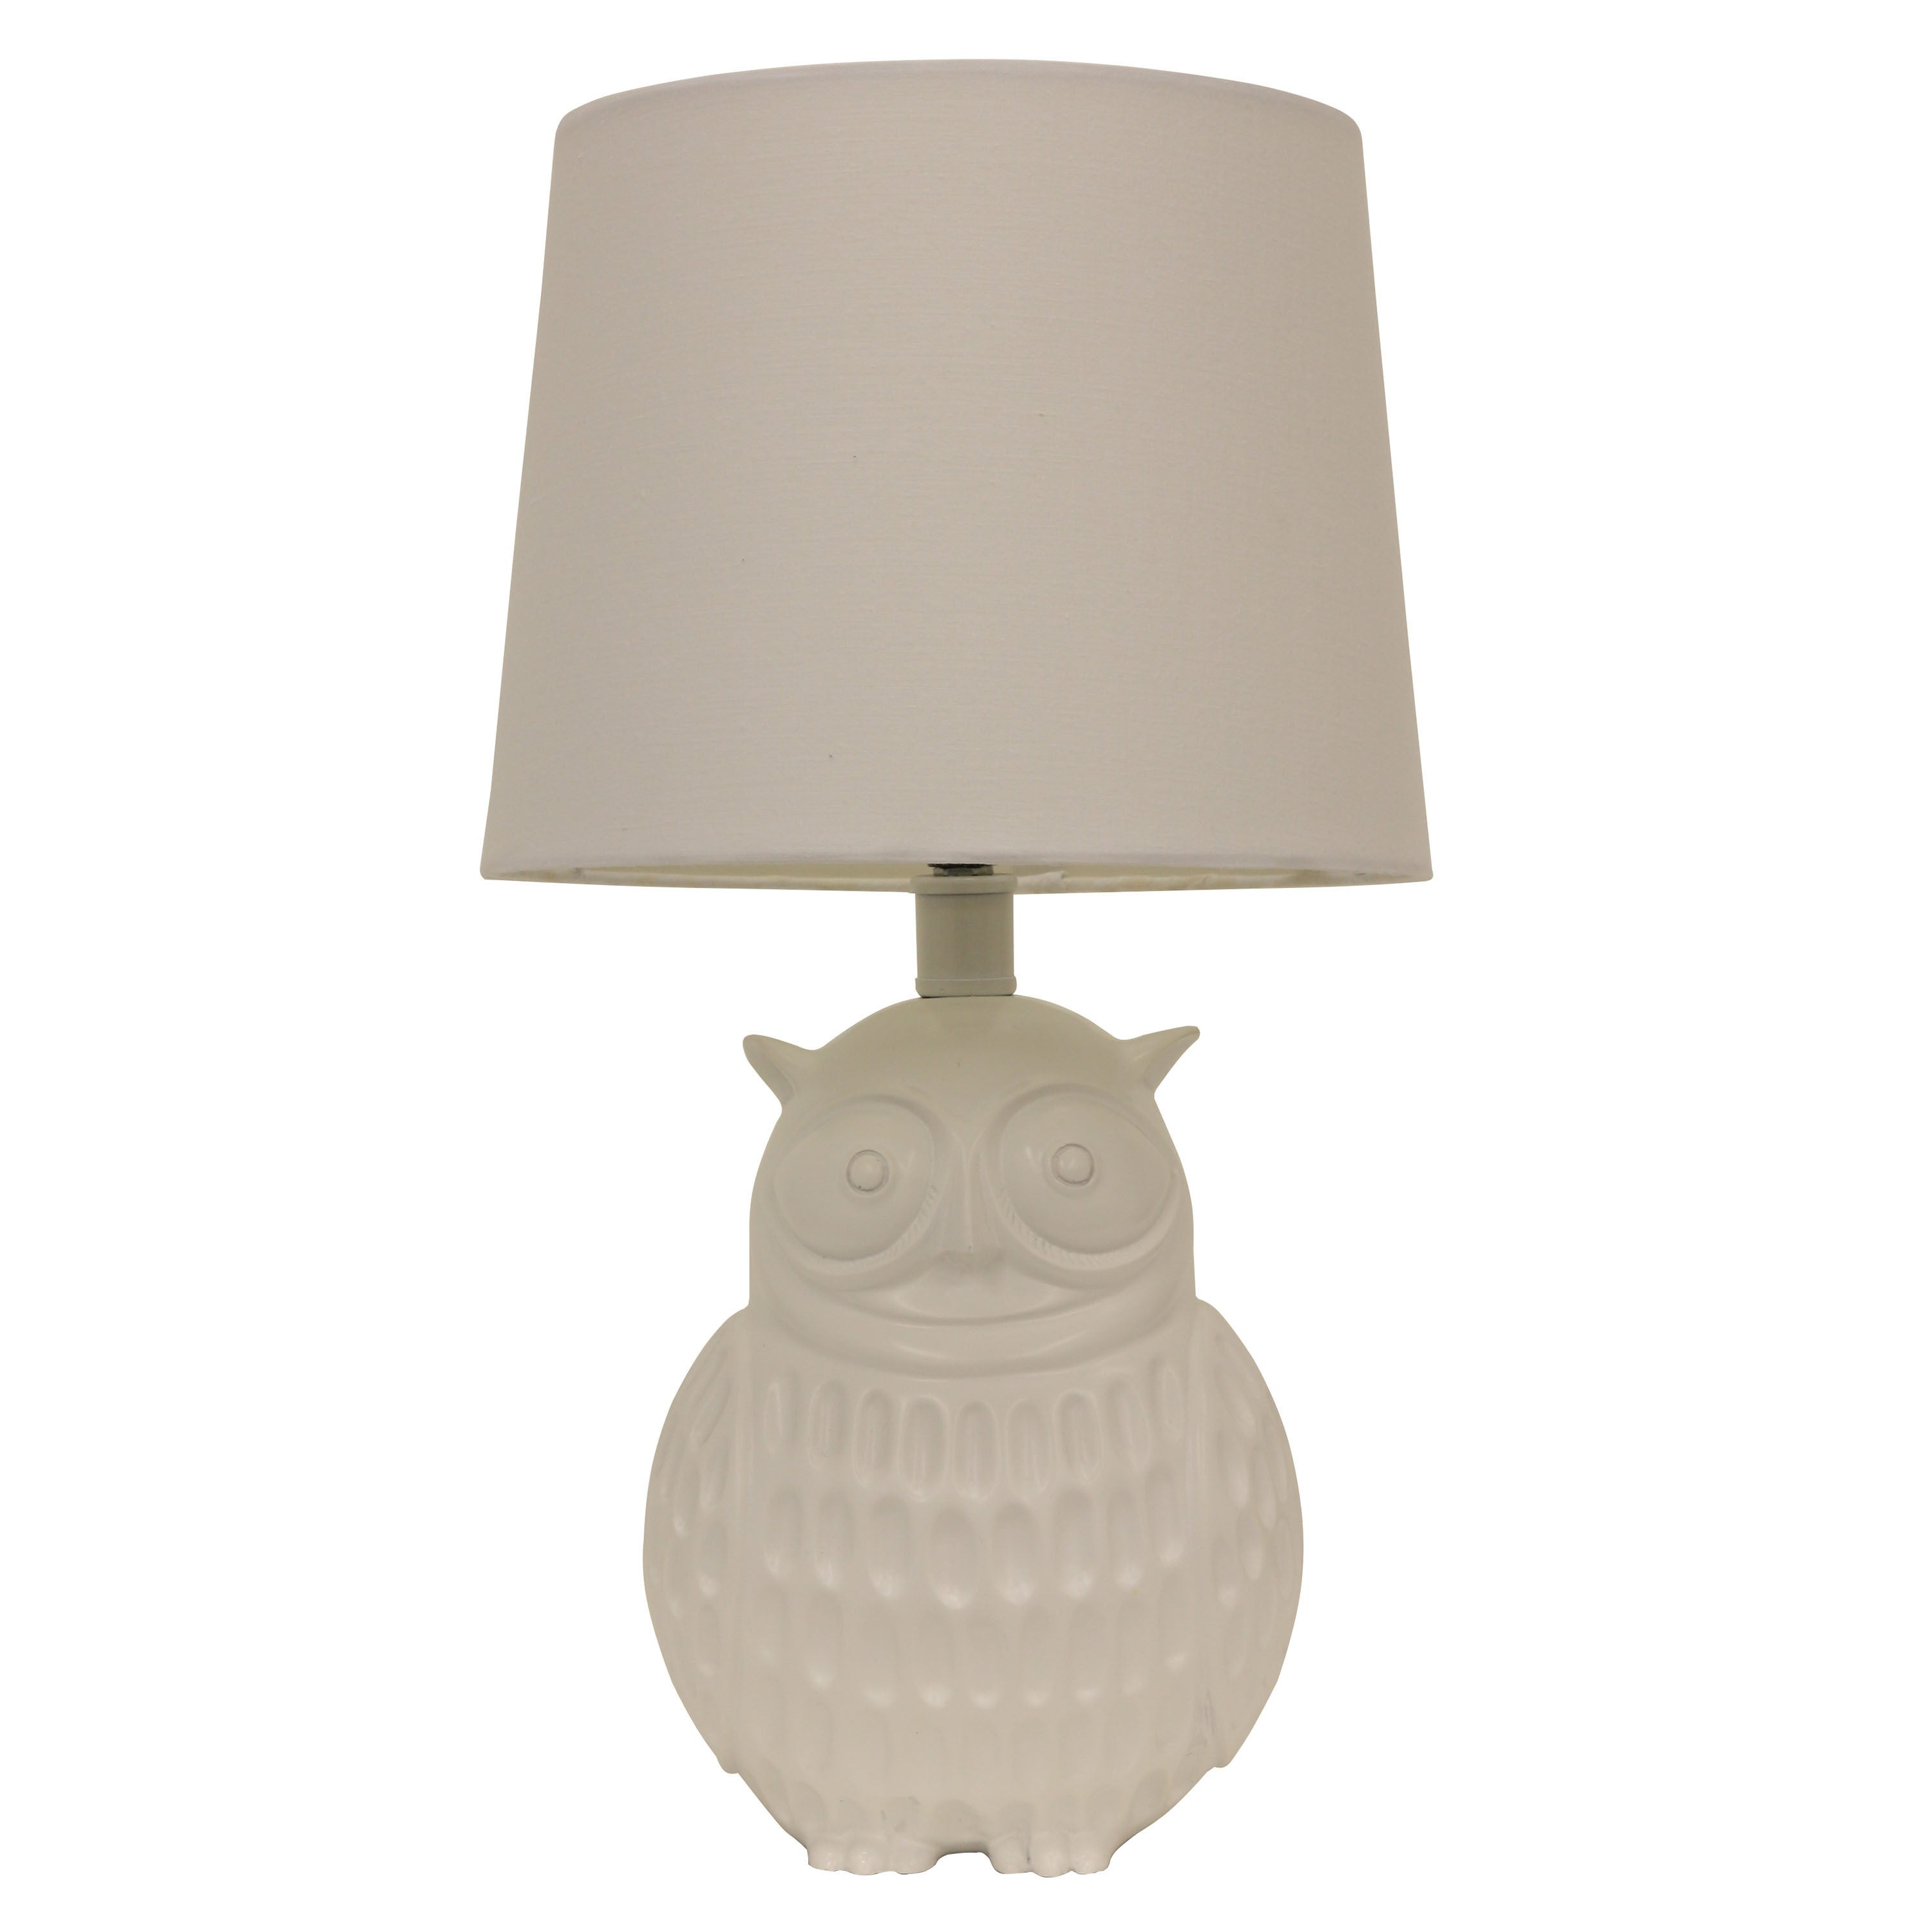 Elegant Decor Therapy Owl White Polyresin Table Lamp   Free Shipping Today    Overstock.com   20462220